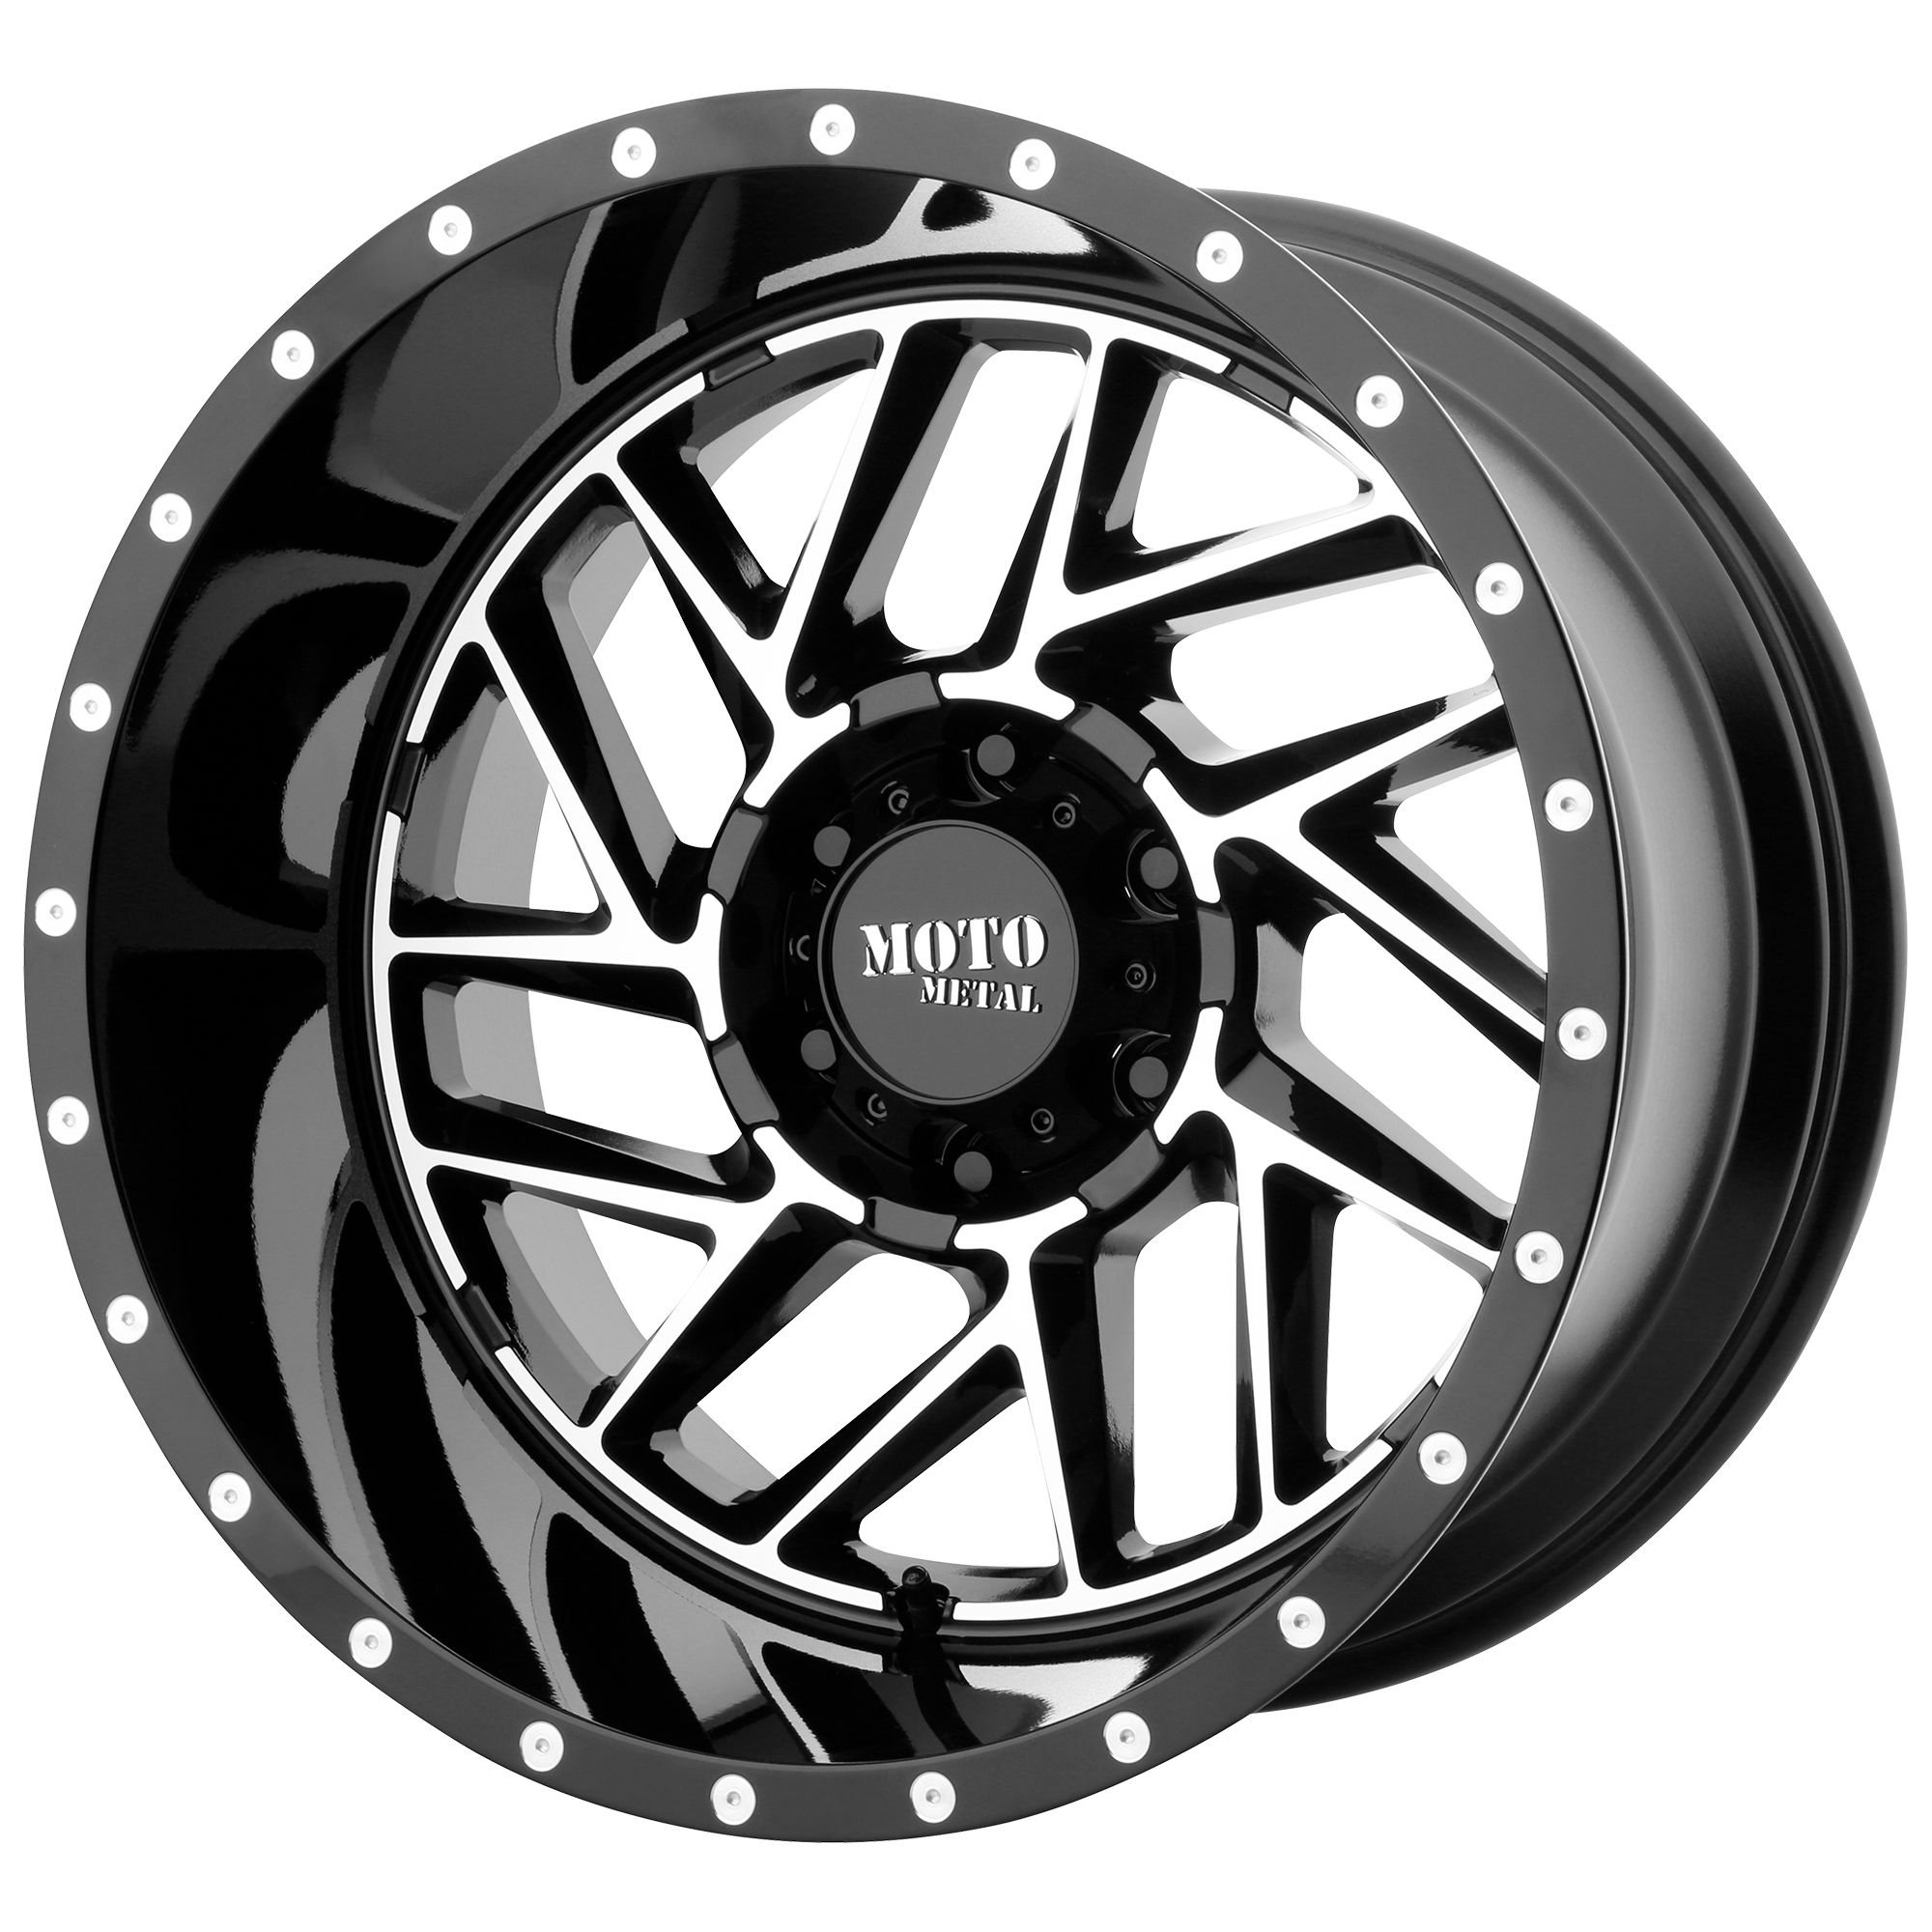 Moto Metal Offroad Wheels BREAKOUT Gloss Black Machined